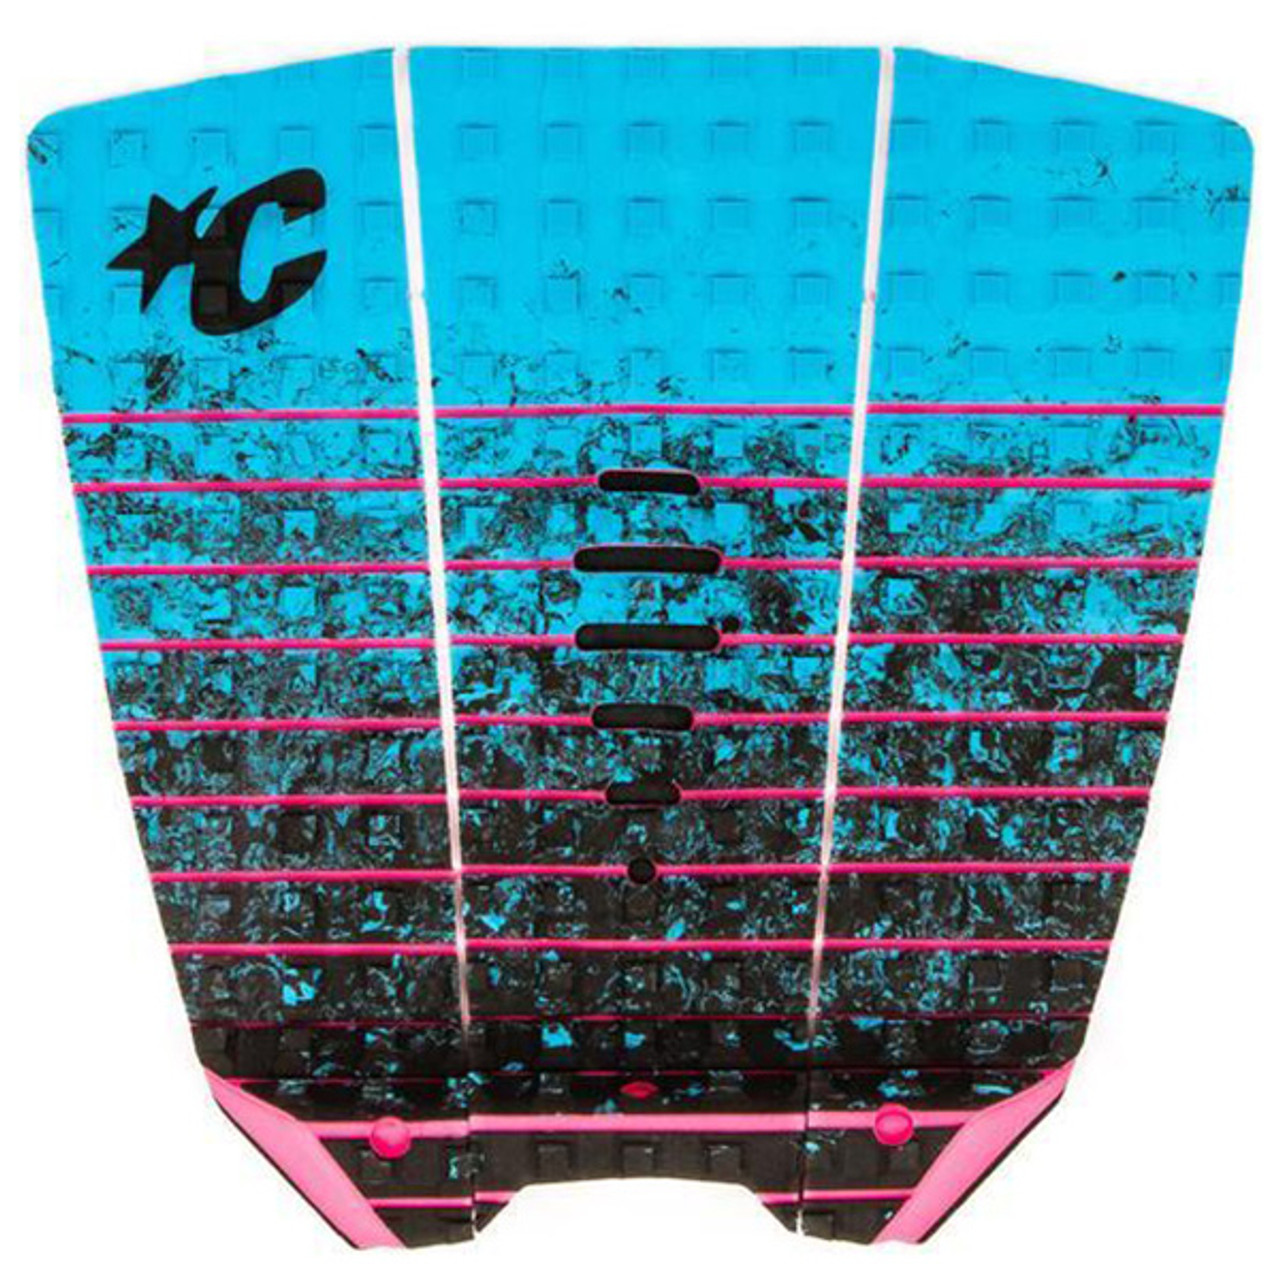 ef3e607d6088 Buy Online Mick Fanning's Surfboard Tail Pad Deck Grip Traction Pad